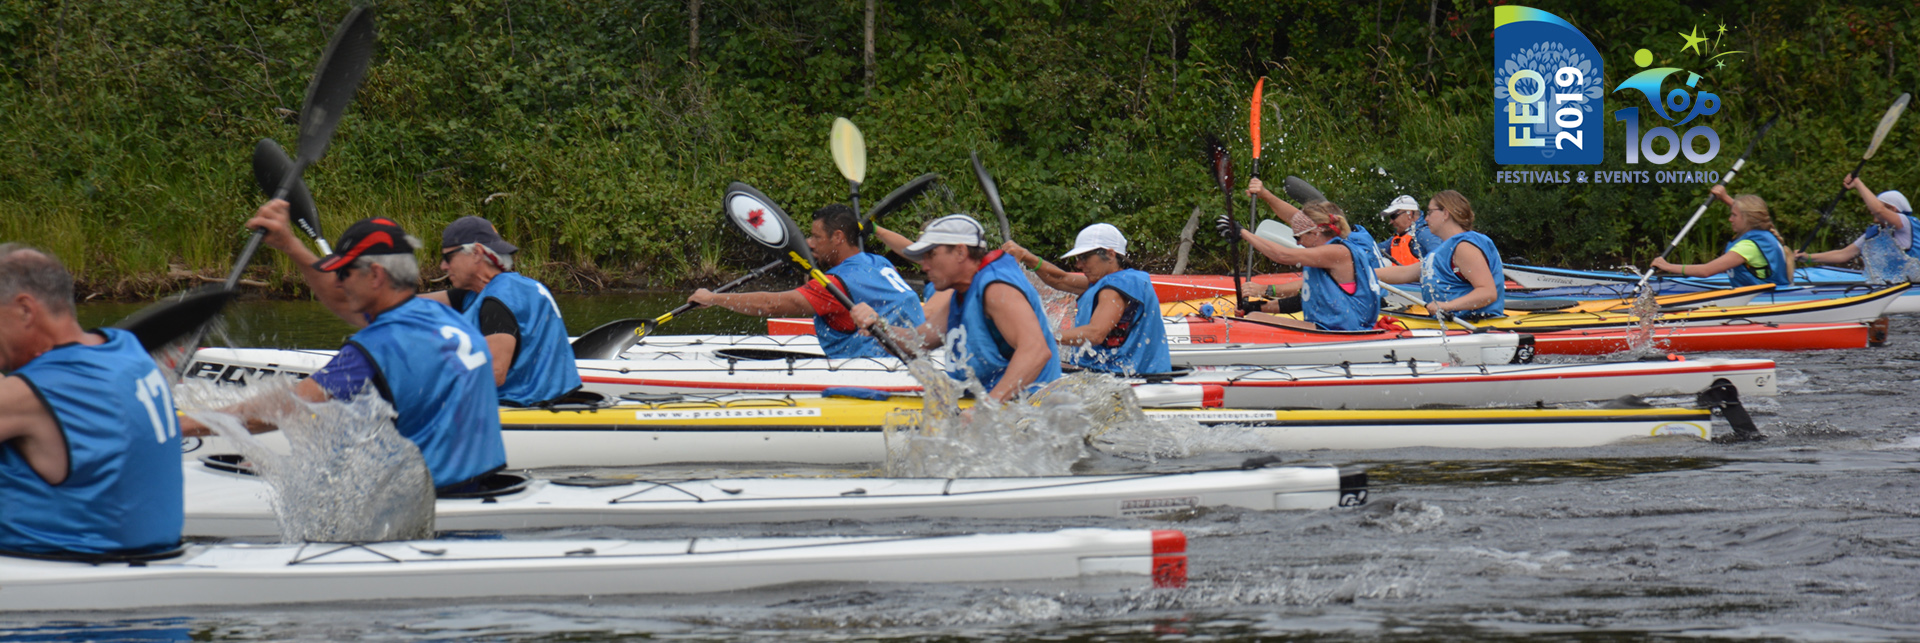 <h2>Stay Tuned for 2021!</h2> 12th Annual Great Canadian Kayak Challenge and Festival!